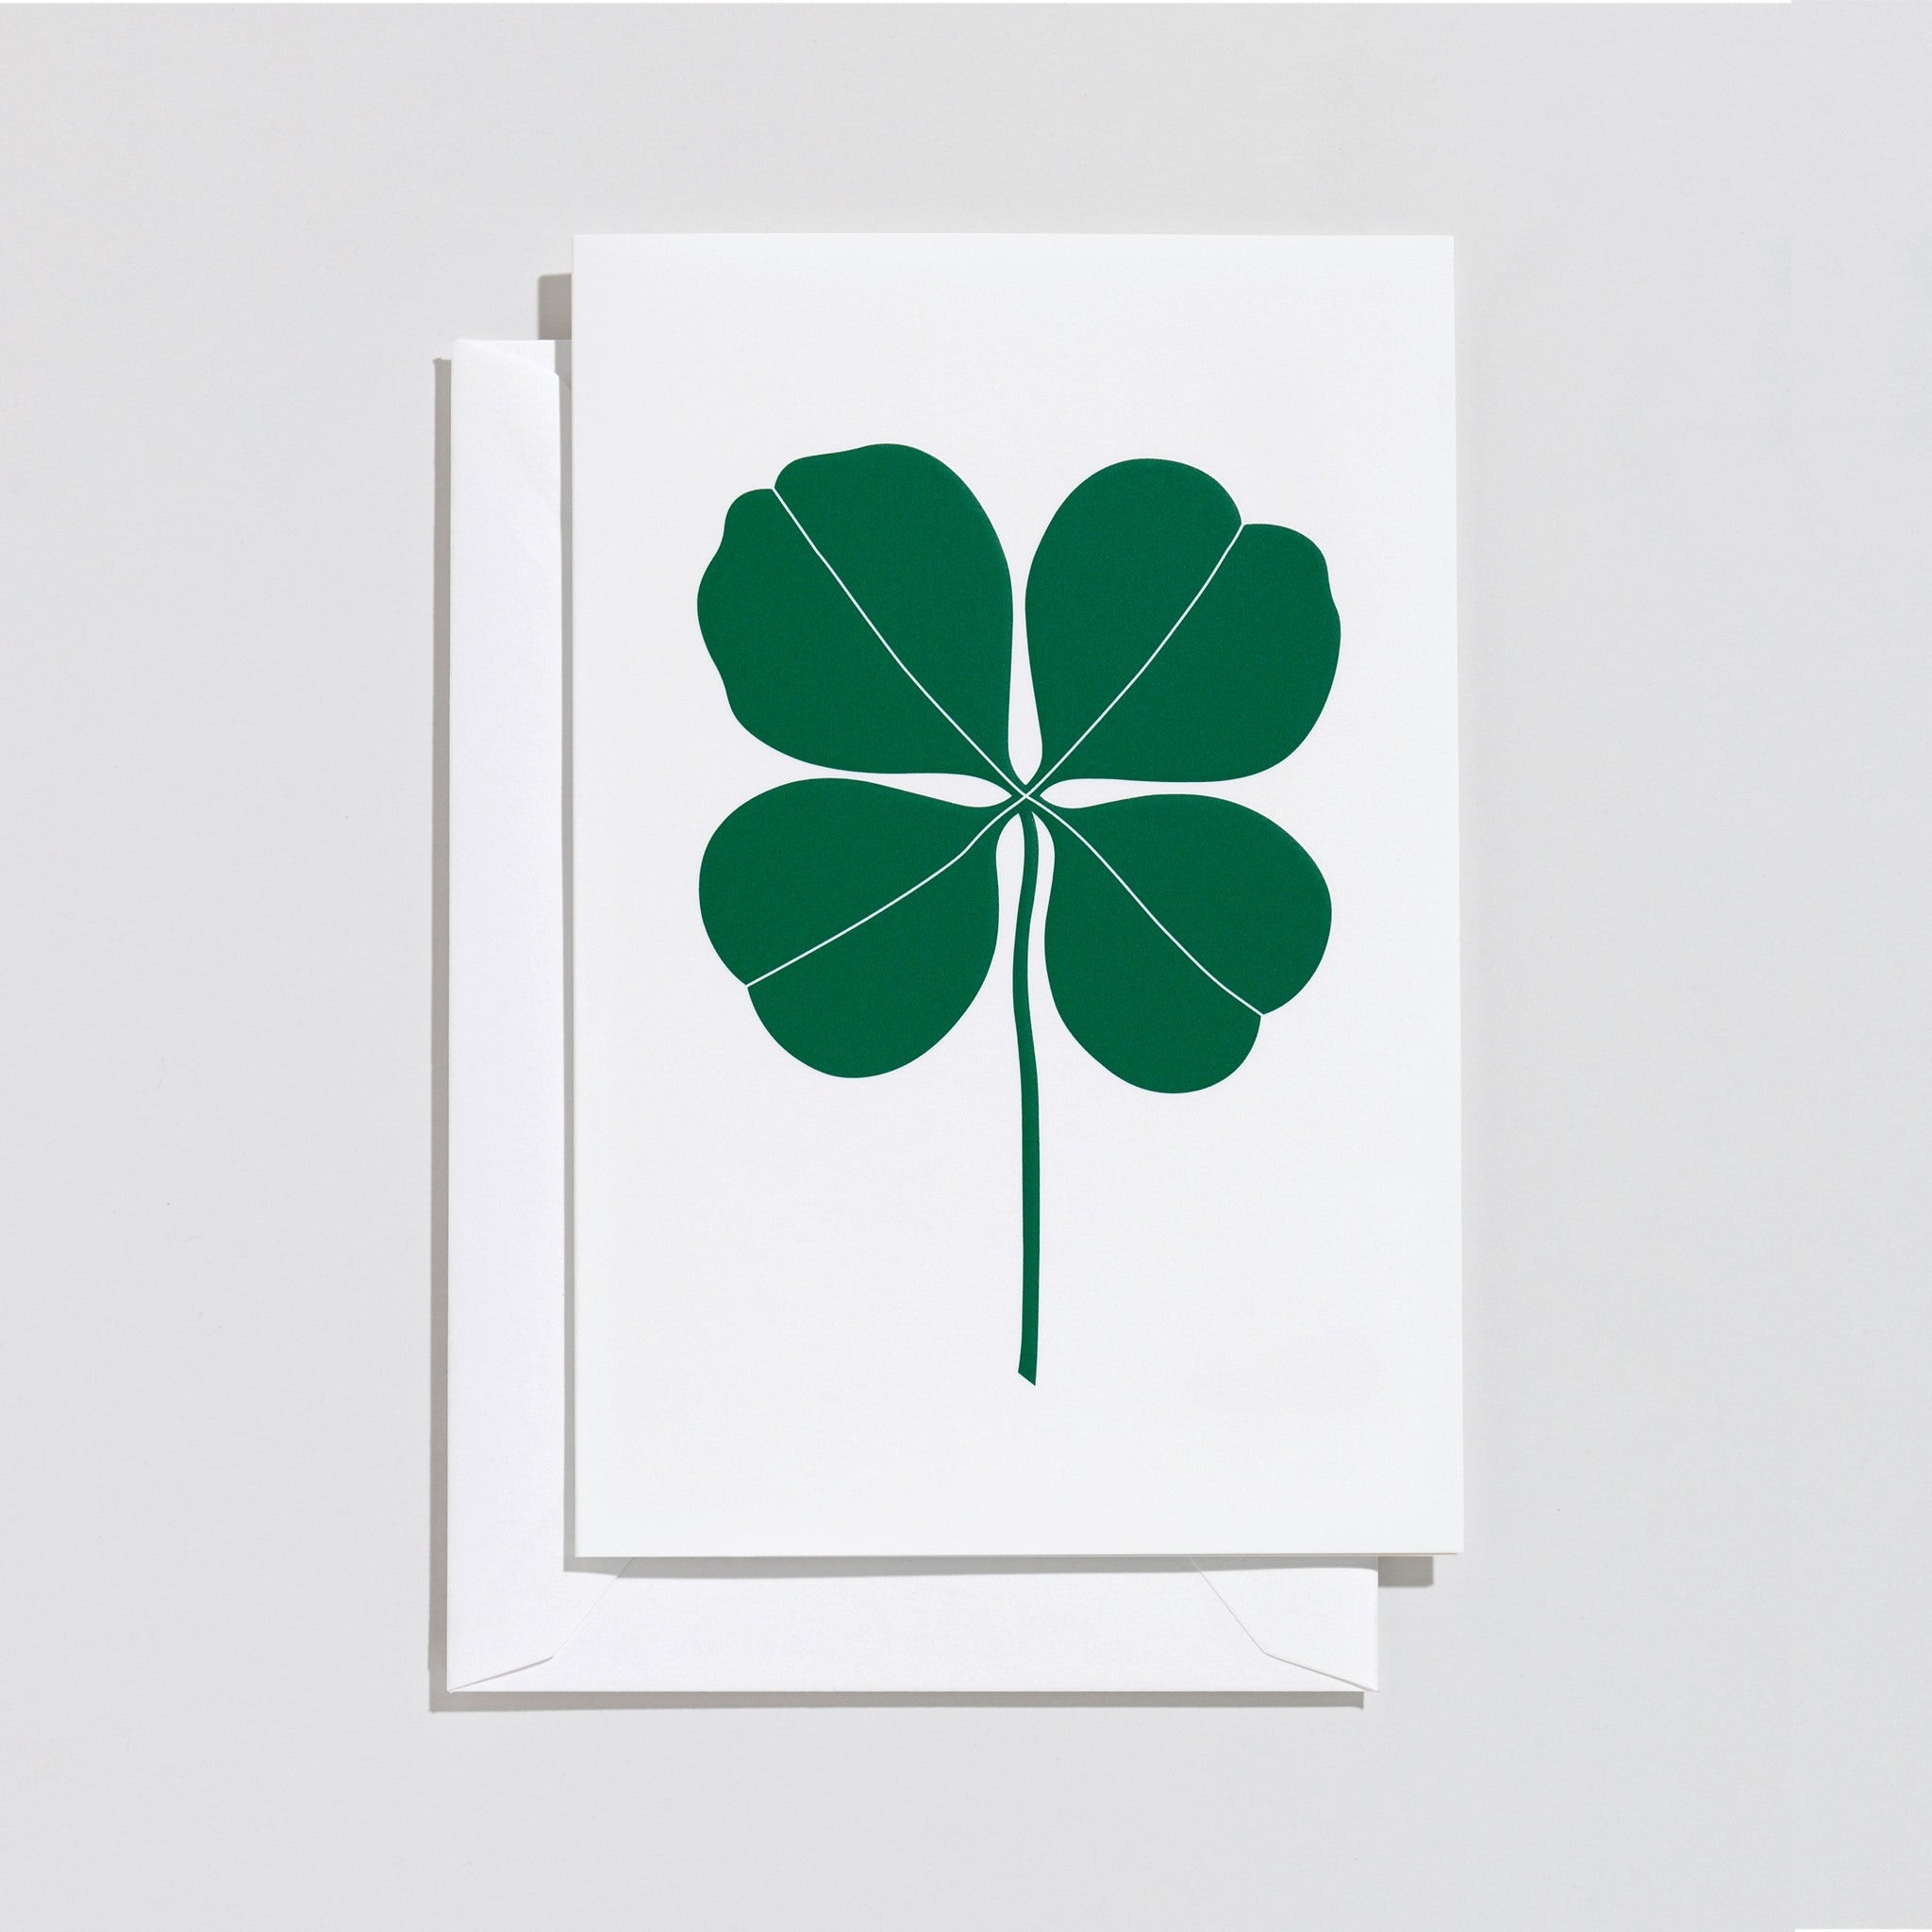 Four Leaf Clover Card By Alexander Girard Haus